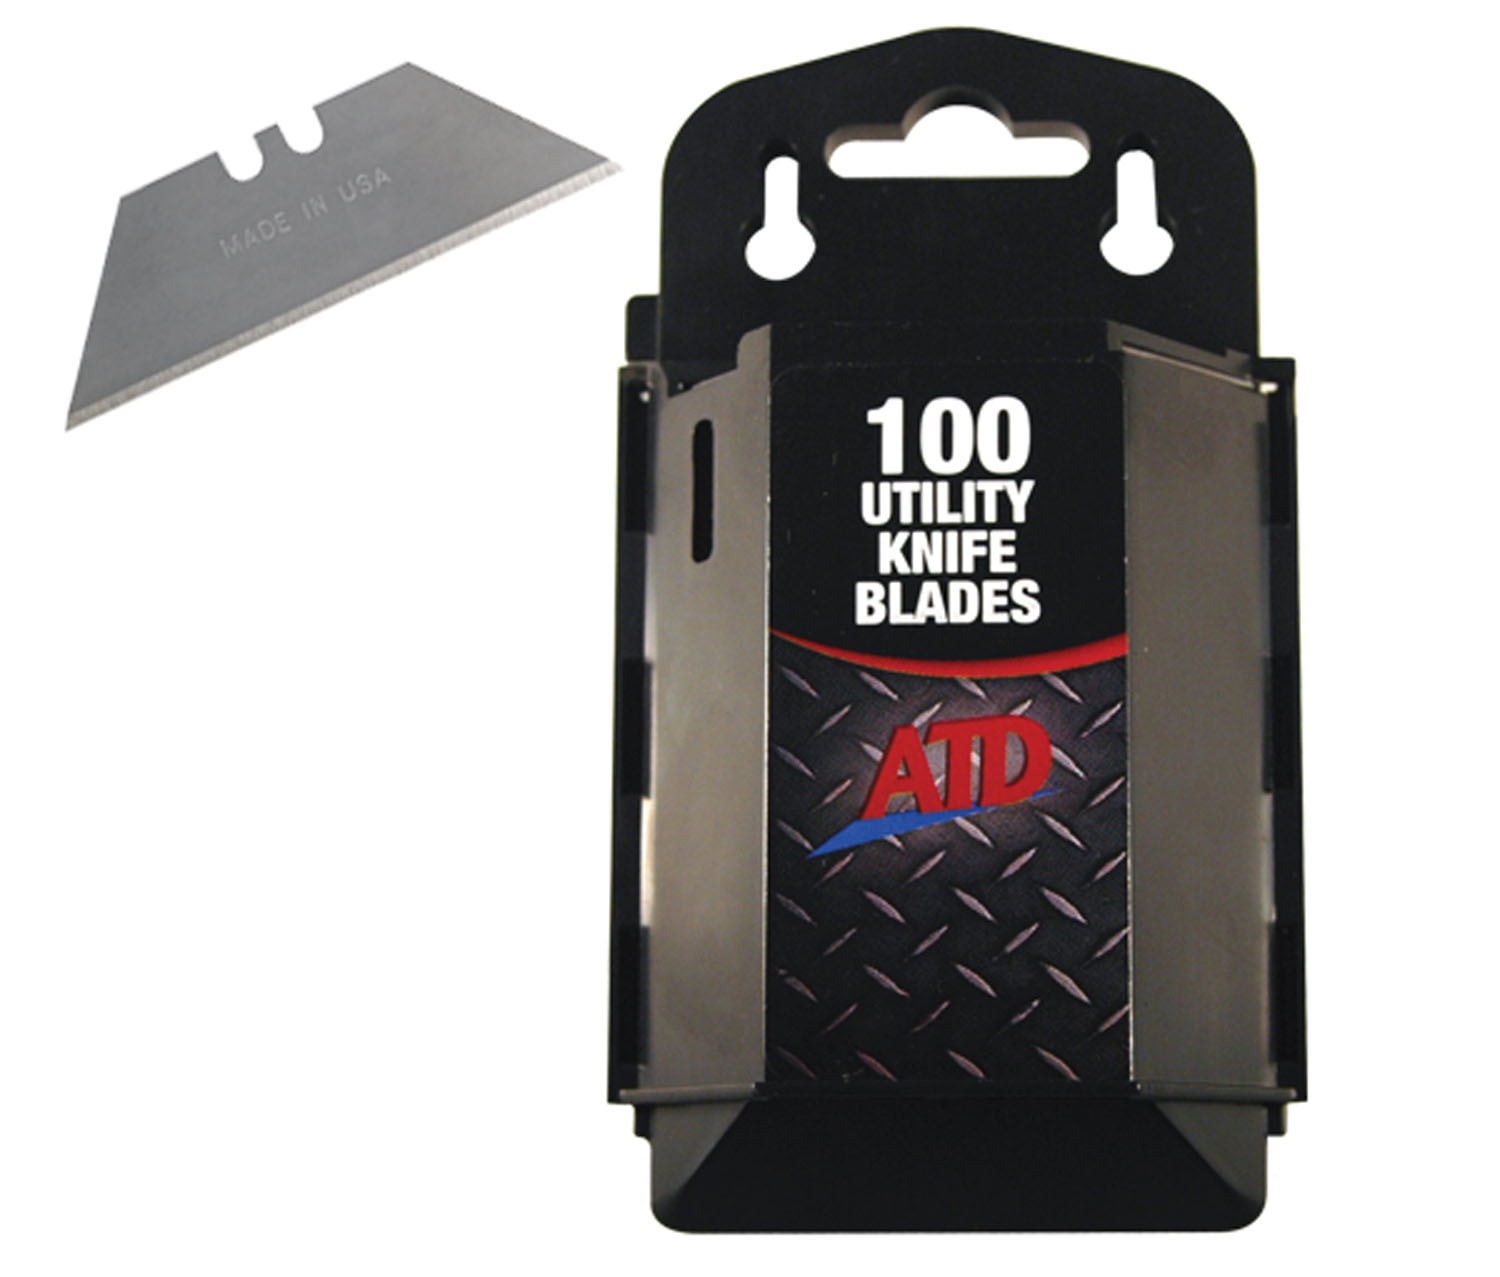 ATD Tools 100 pack Utility Knife Blades with Dispenser ATD-8813